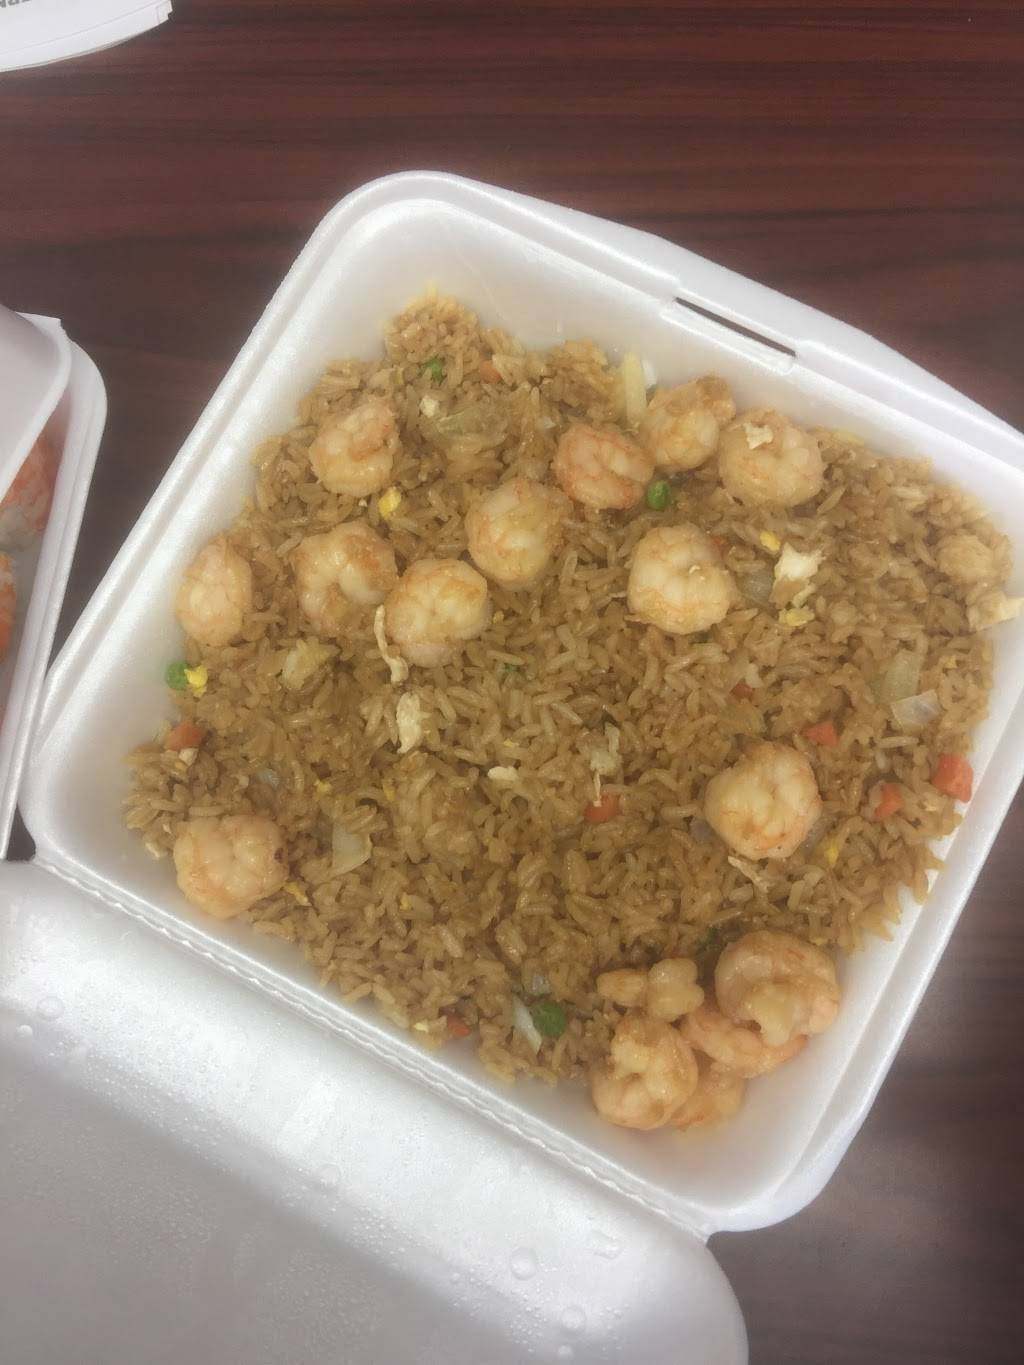 Sushi Express   meal delivery   3603 Division Street, Metairie, LA 70002, USA   5044552448 OR +1 504-455-2448